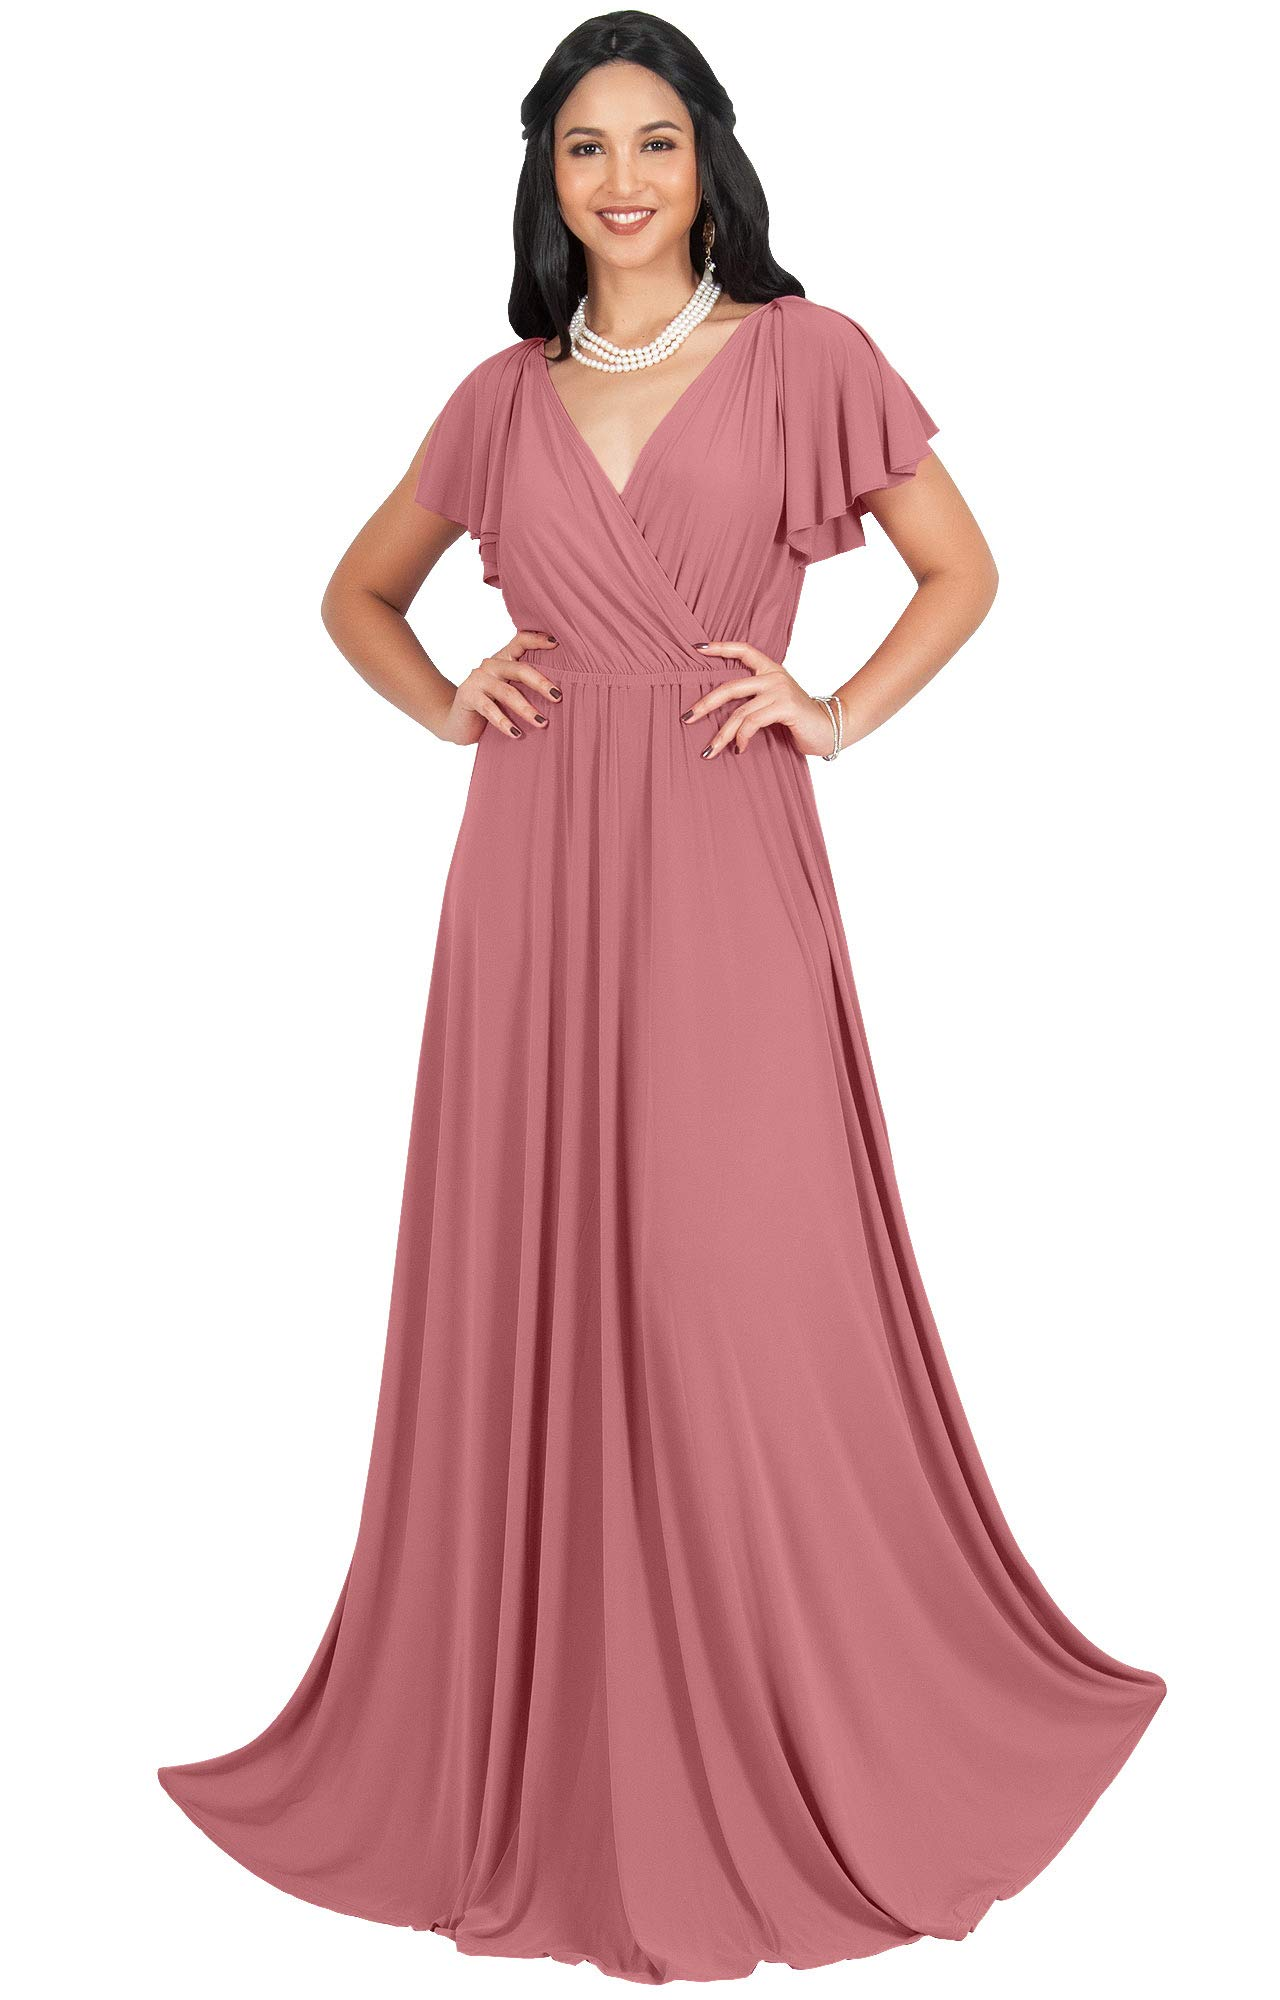 d692d9db2f KOH KOH Petite Womens Long V-Neck Sleeveless Flowy Prom Evening Wedding  Party Guest Bridesmaid Bridal Formal Cocktail Summer Floor-Length Gown  Gowns Maxi ...